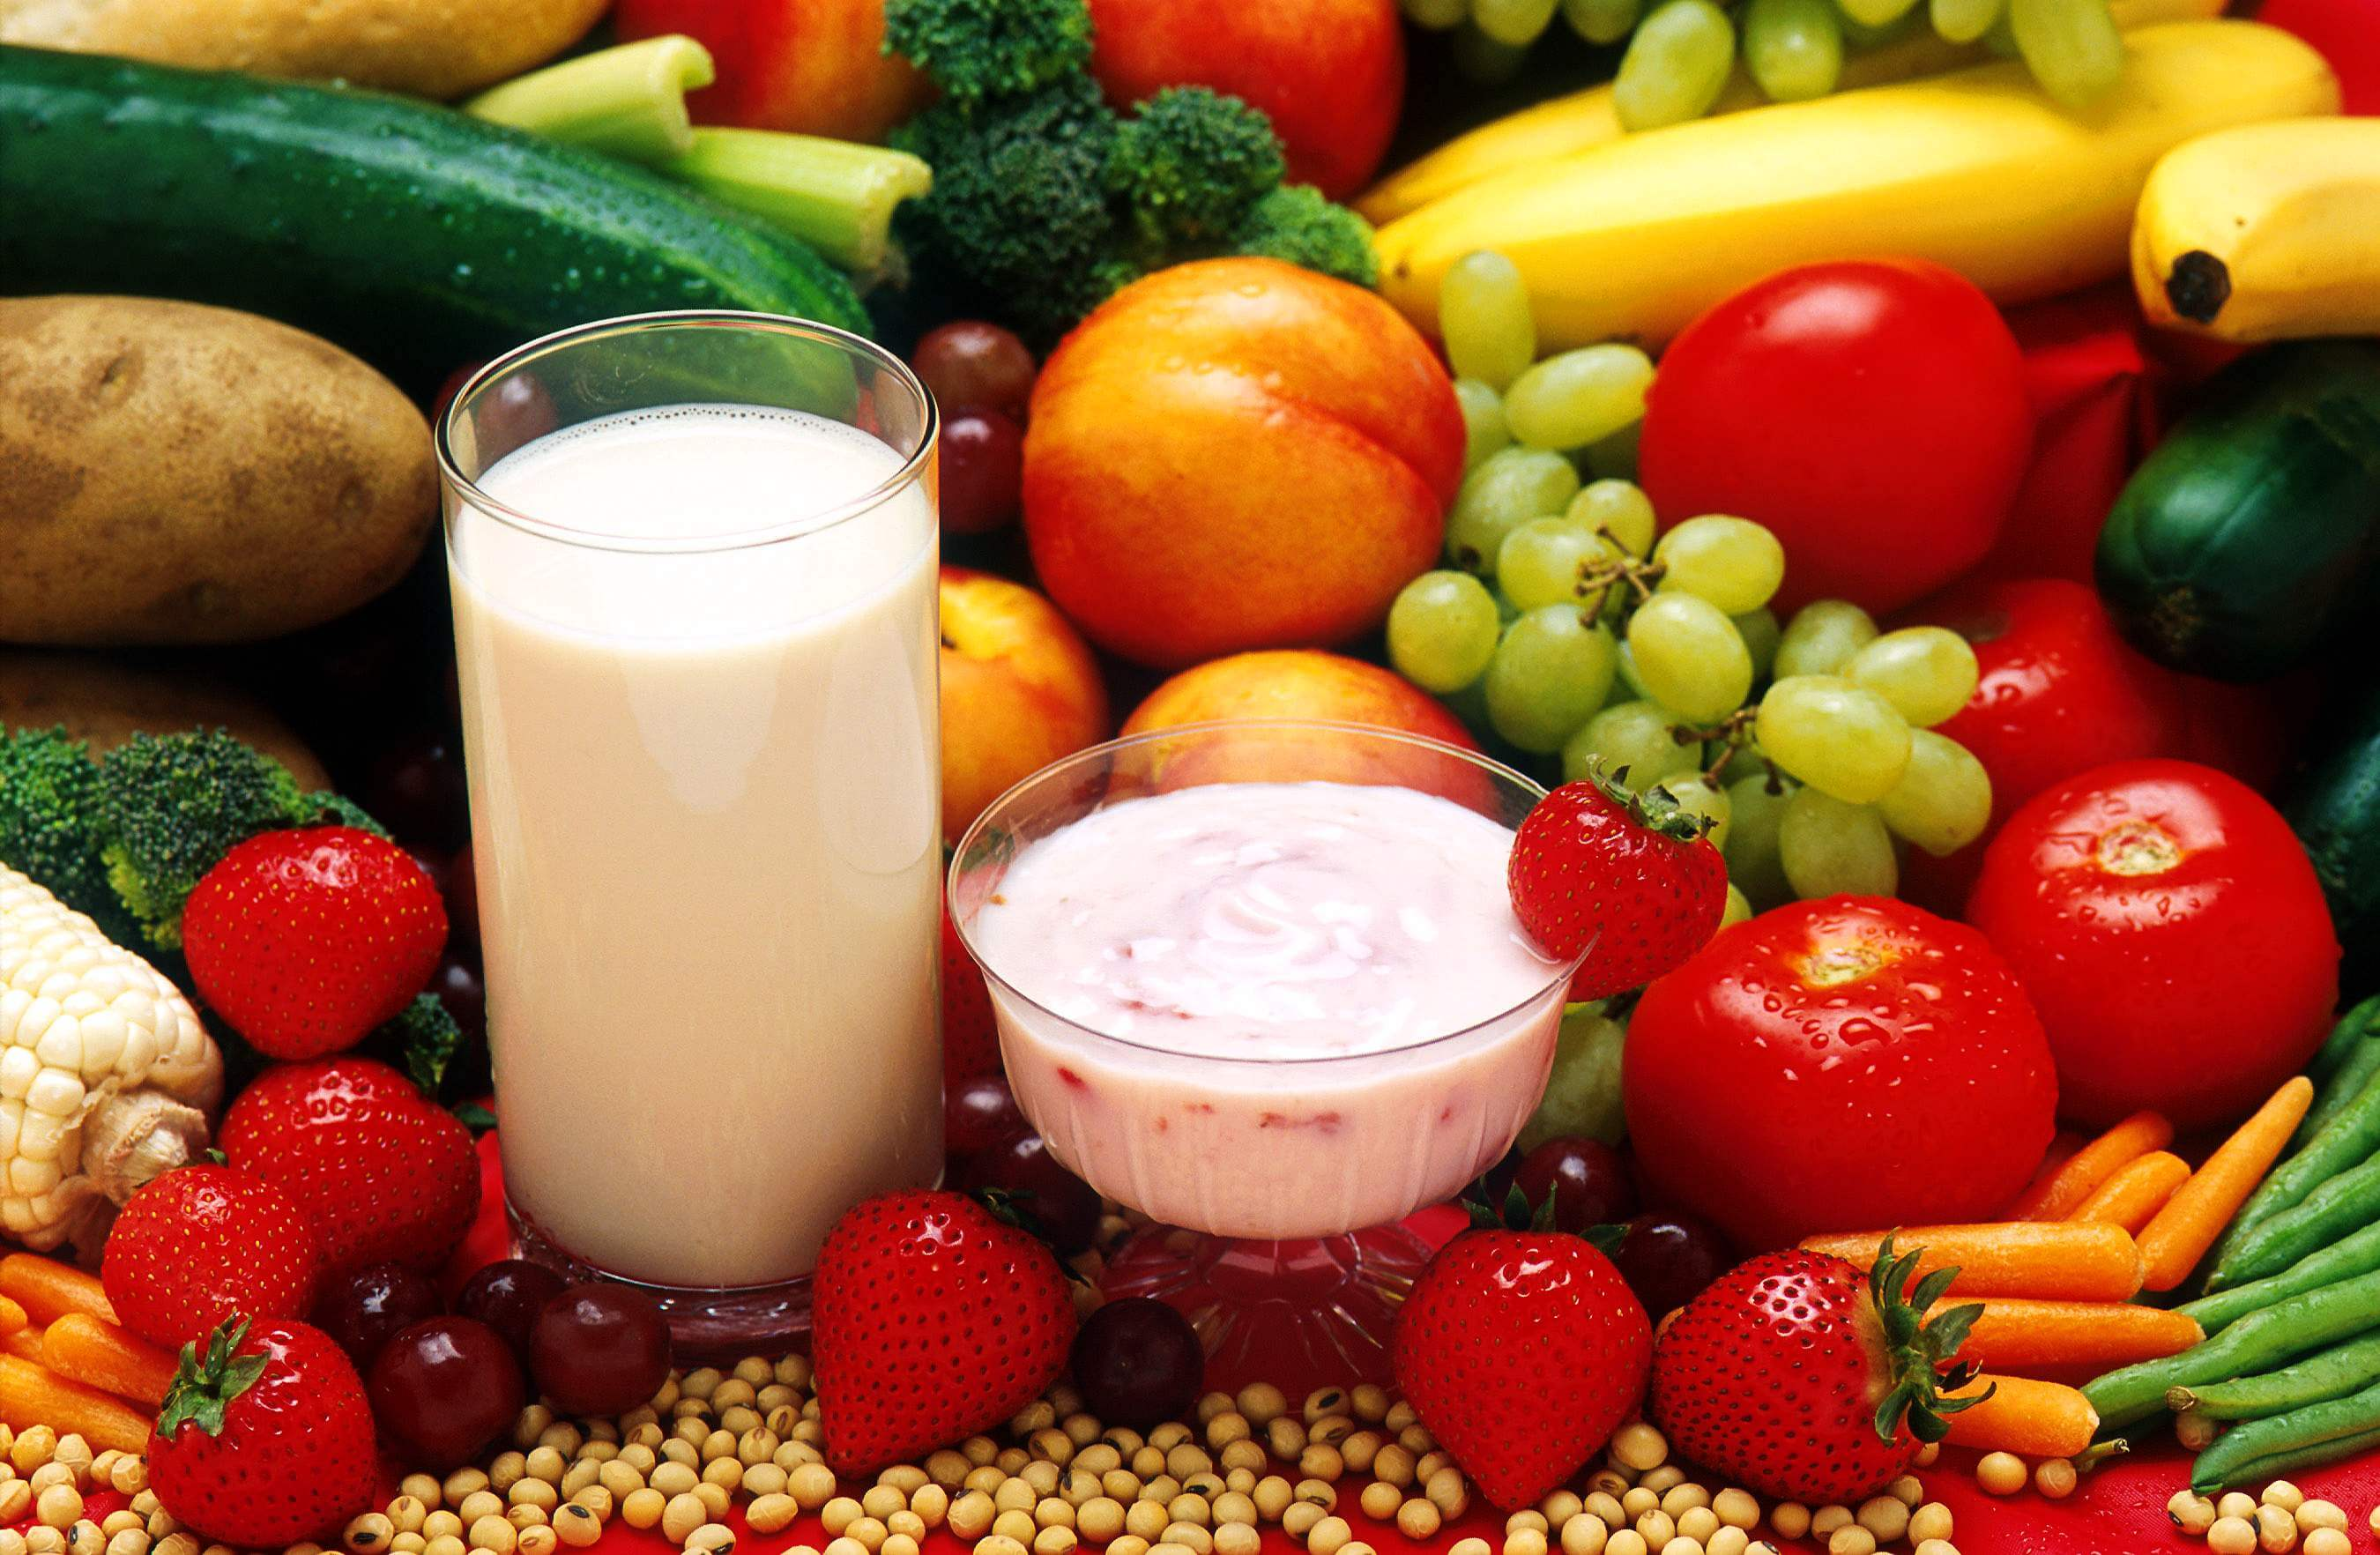 Maintain A Proper Diet And Exercise Regularly